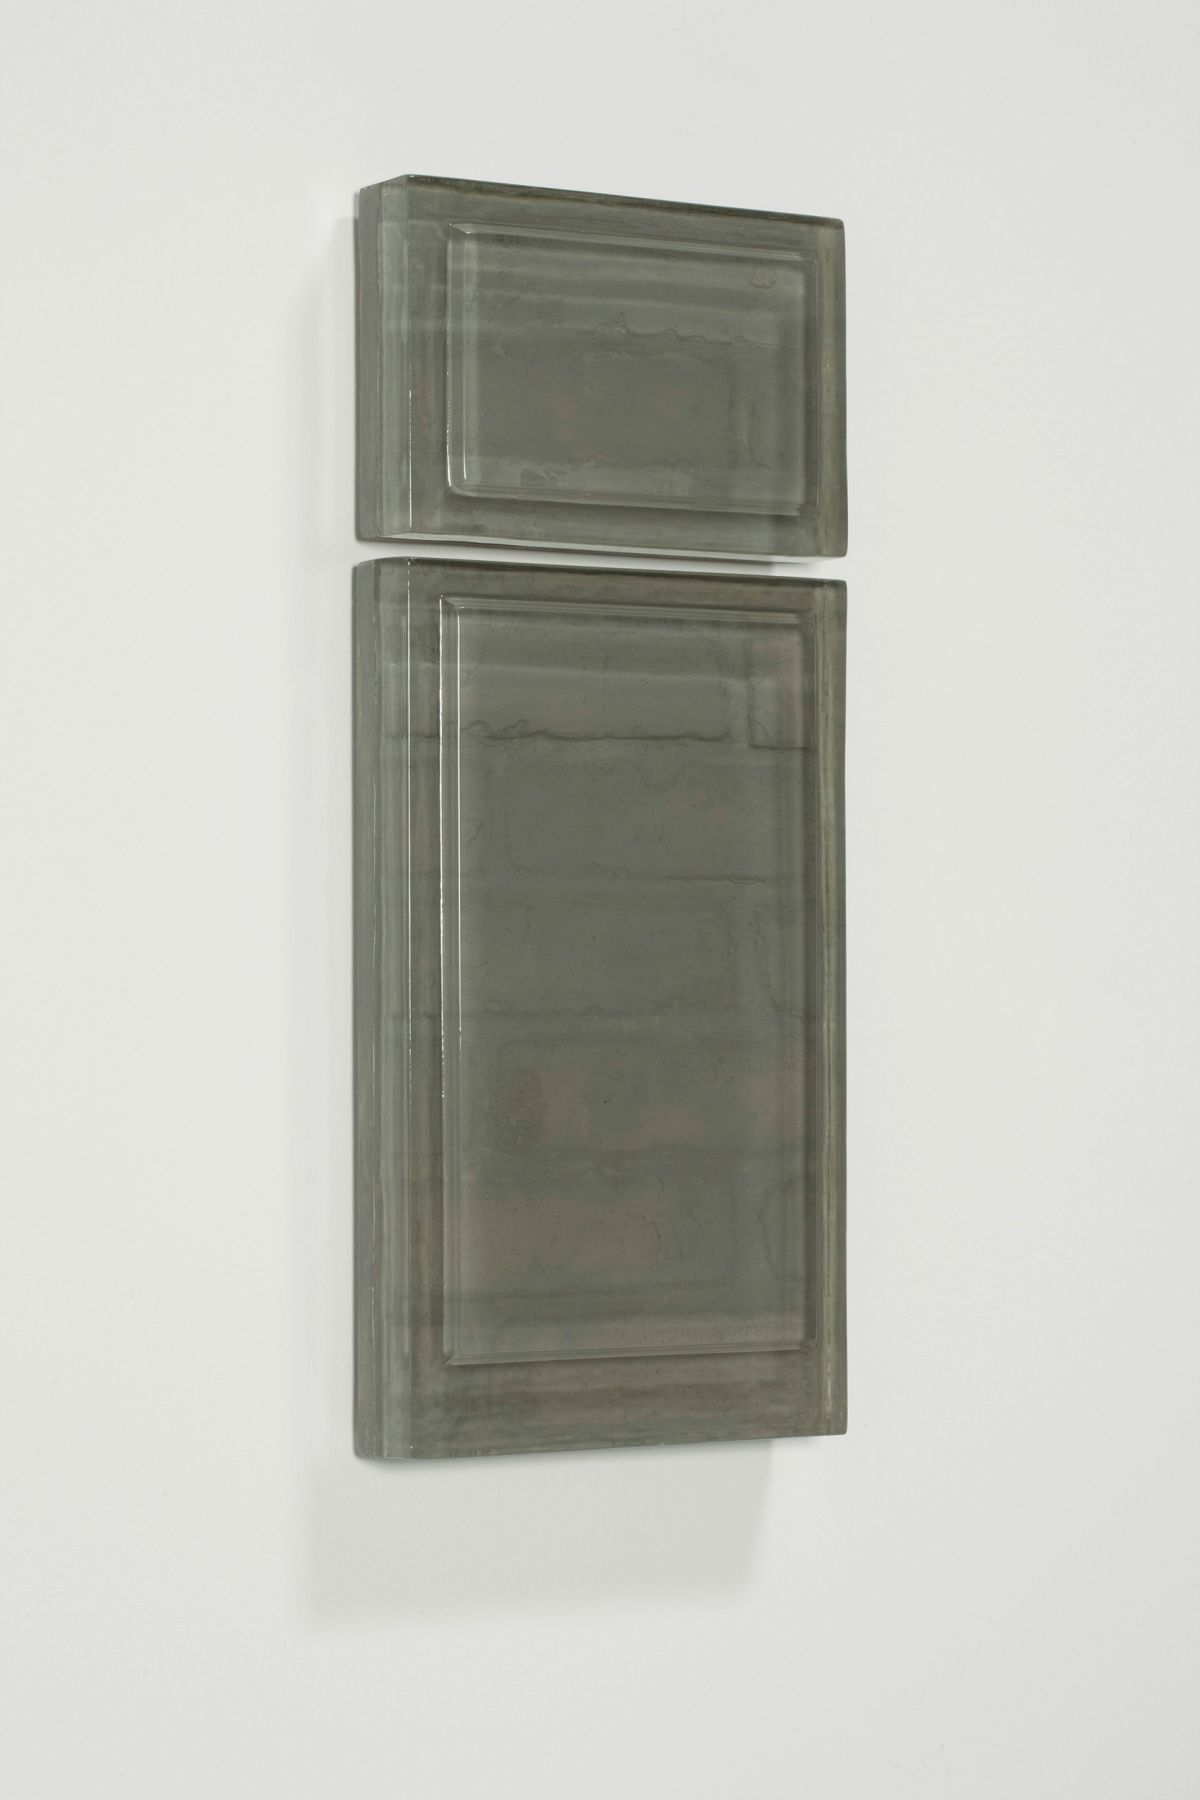 Rachel Whiteread Untitled, 2015